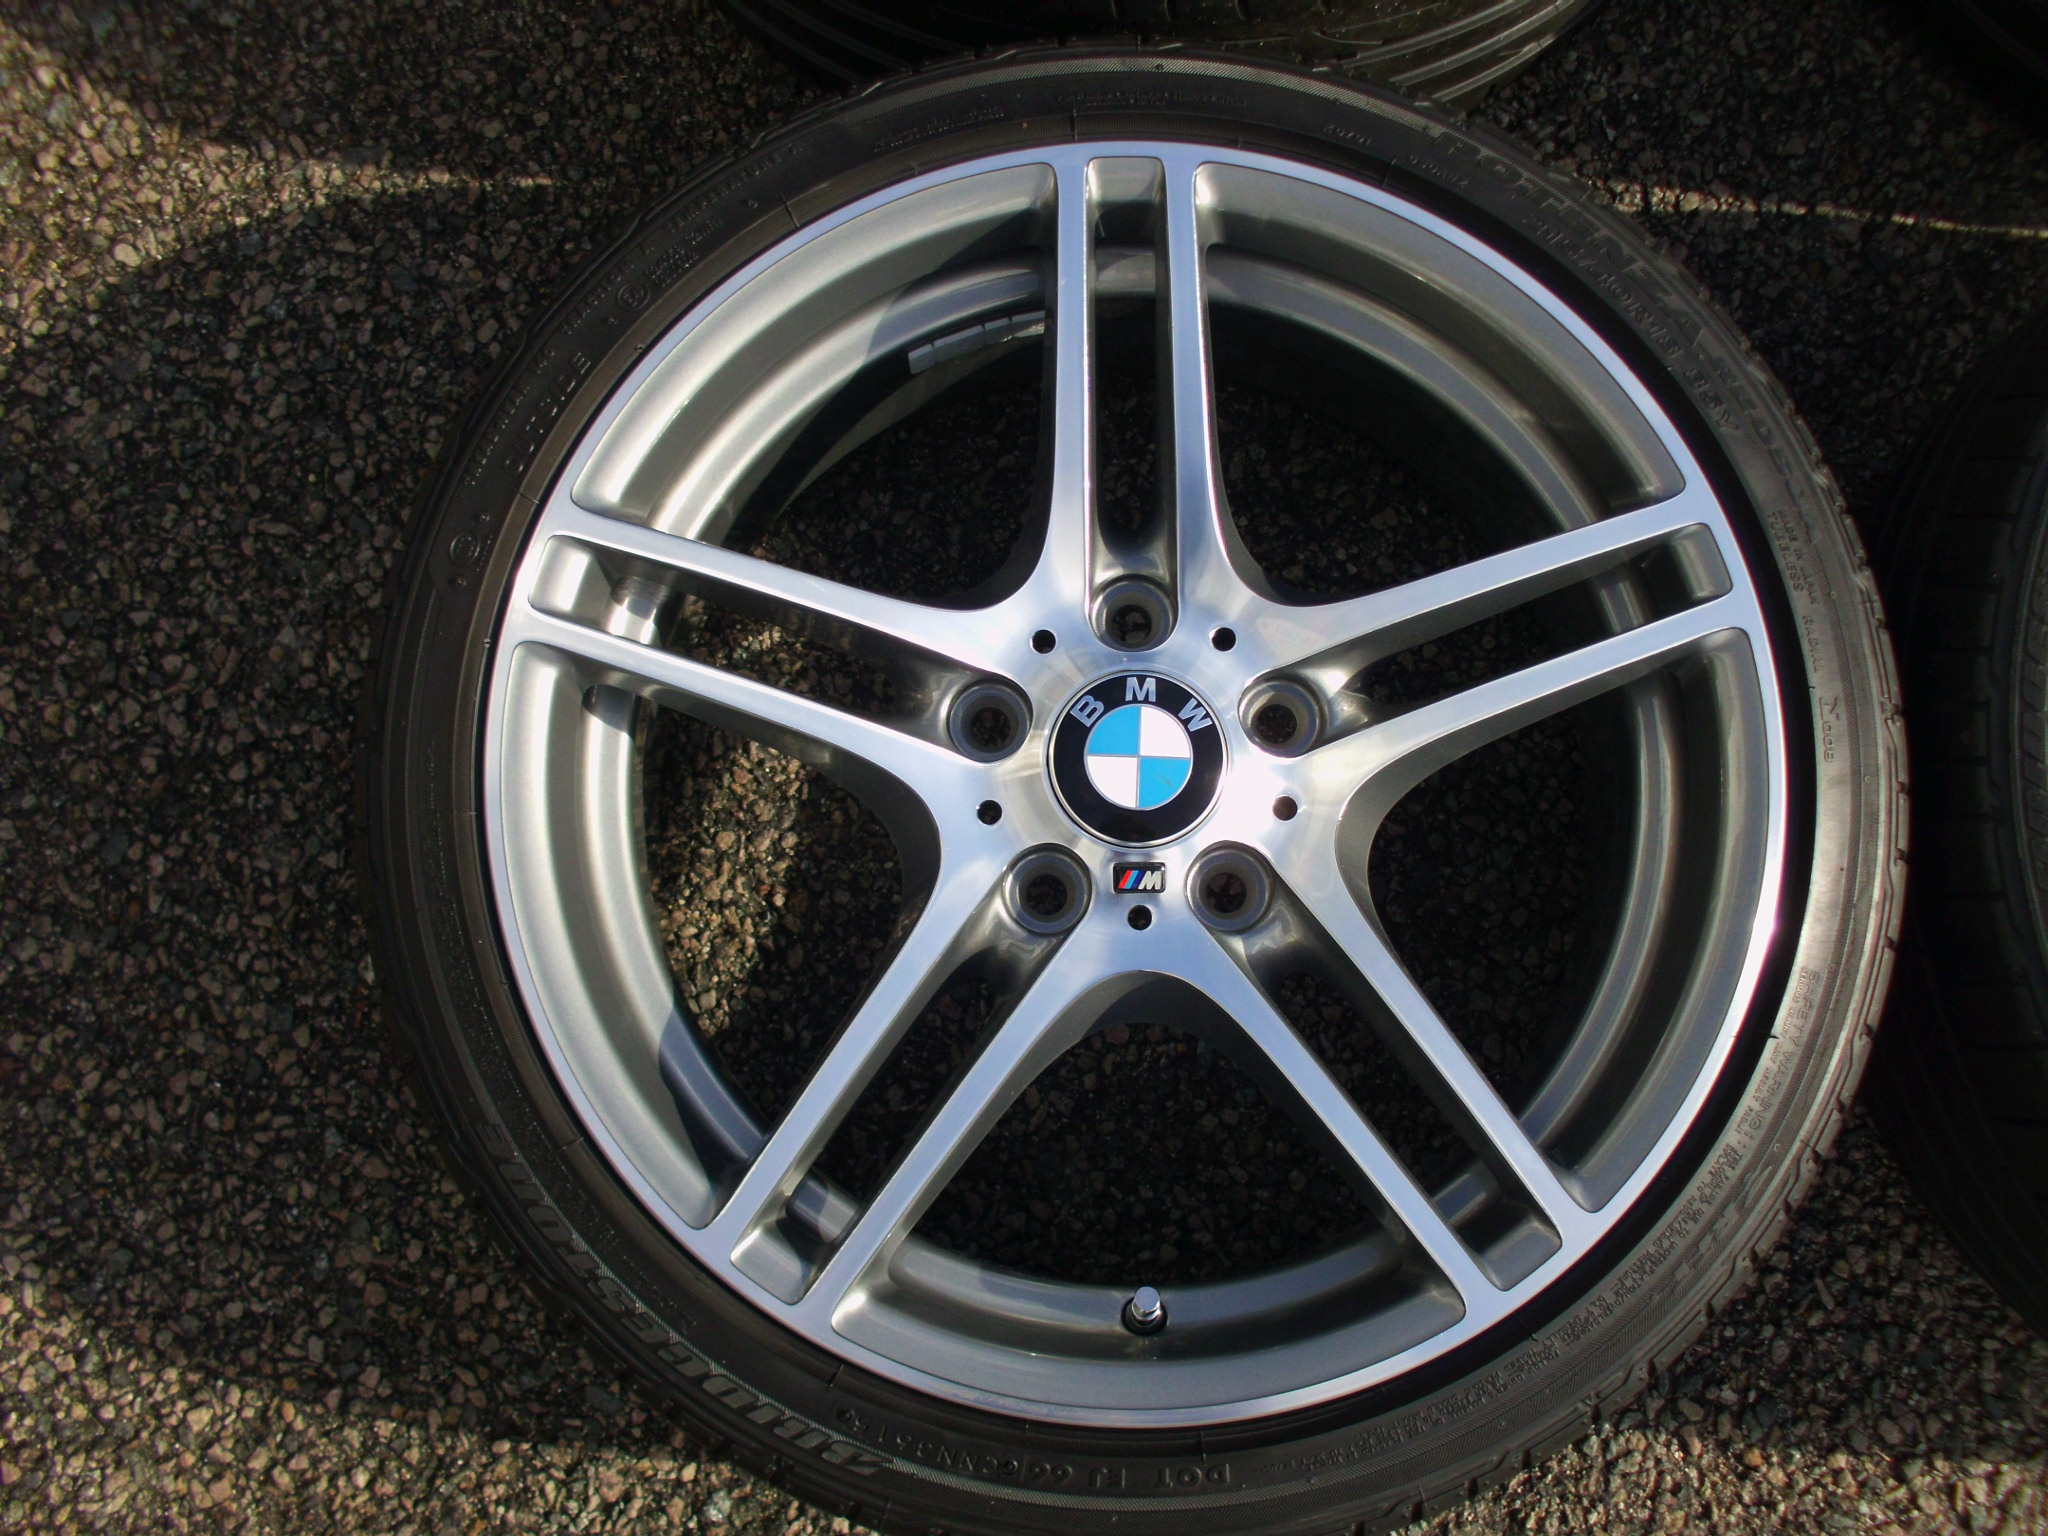 "USED 18"" GENUINE STYLE BMW STYLE 313 M SPORT DOUBLE SPOKE ALLOY WHEELS ,WIDE REAR,FULLY REFURBED INC VG BRIDGESTONE RUNFLAT TYRES"